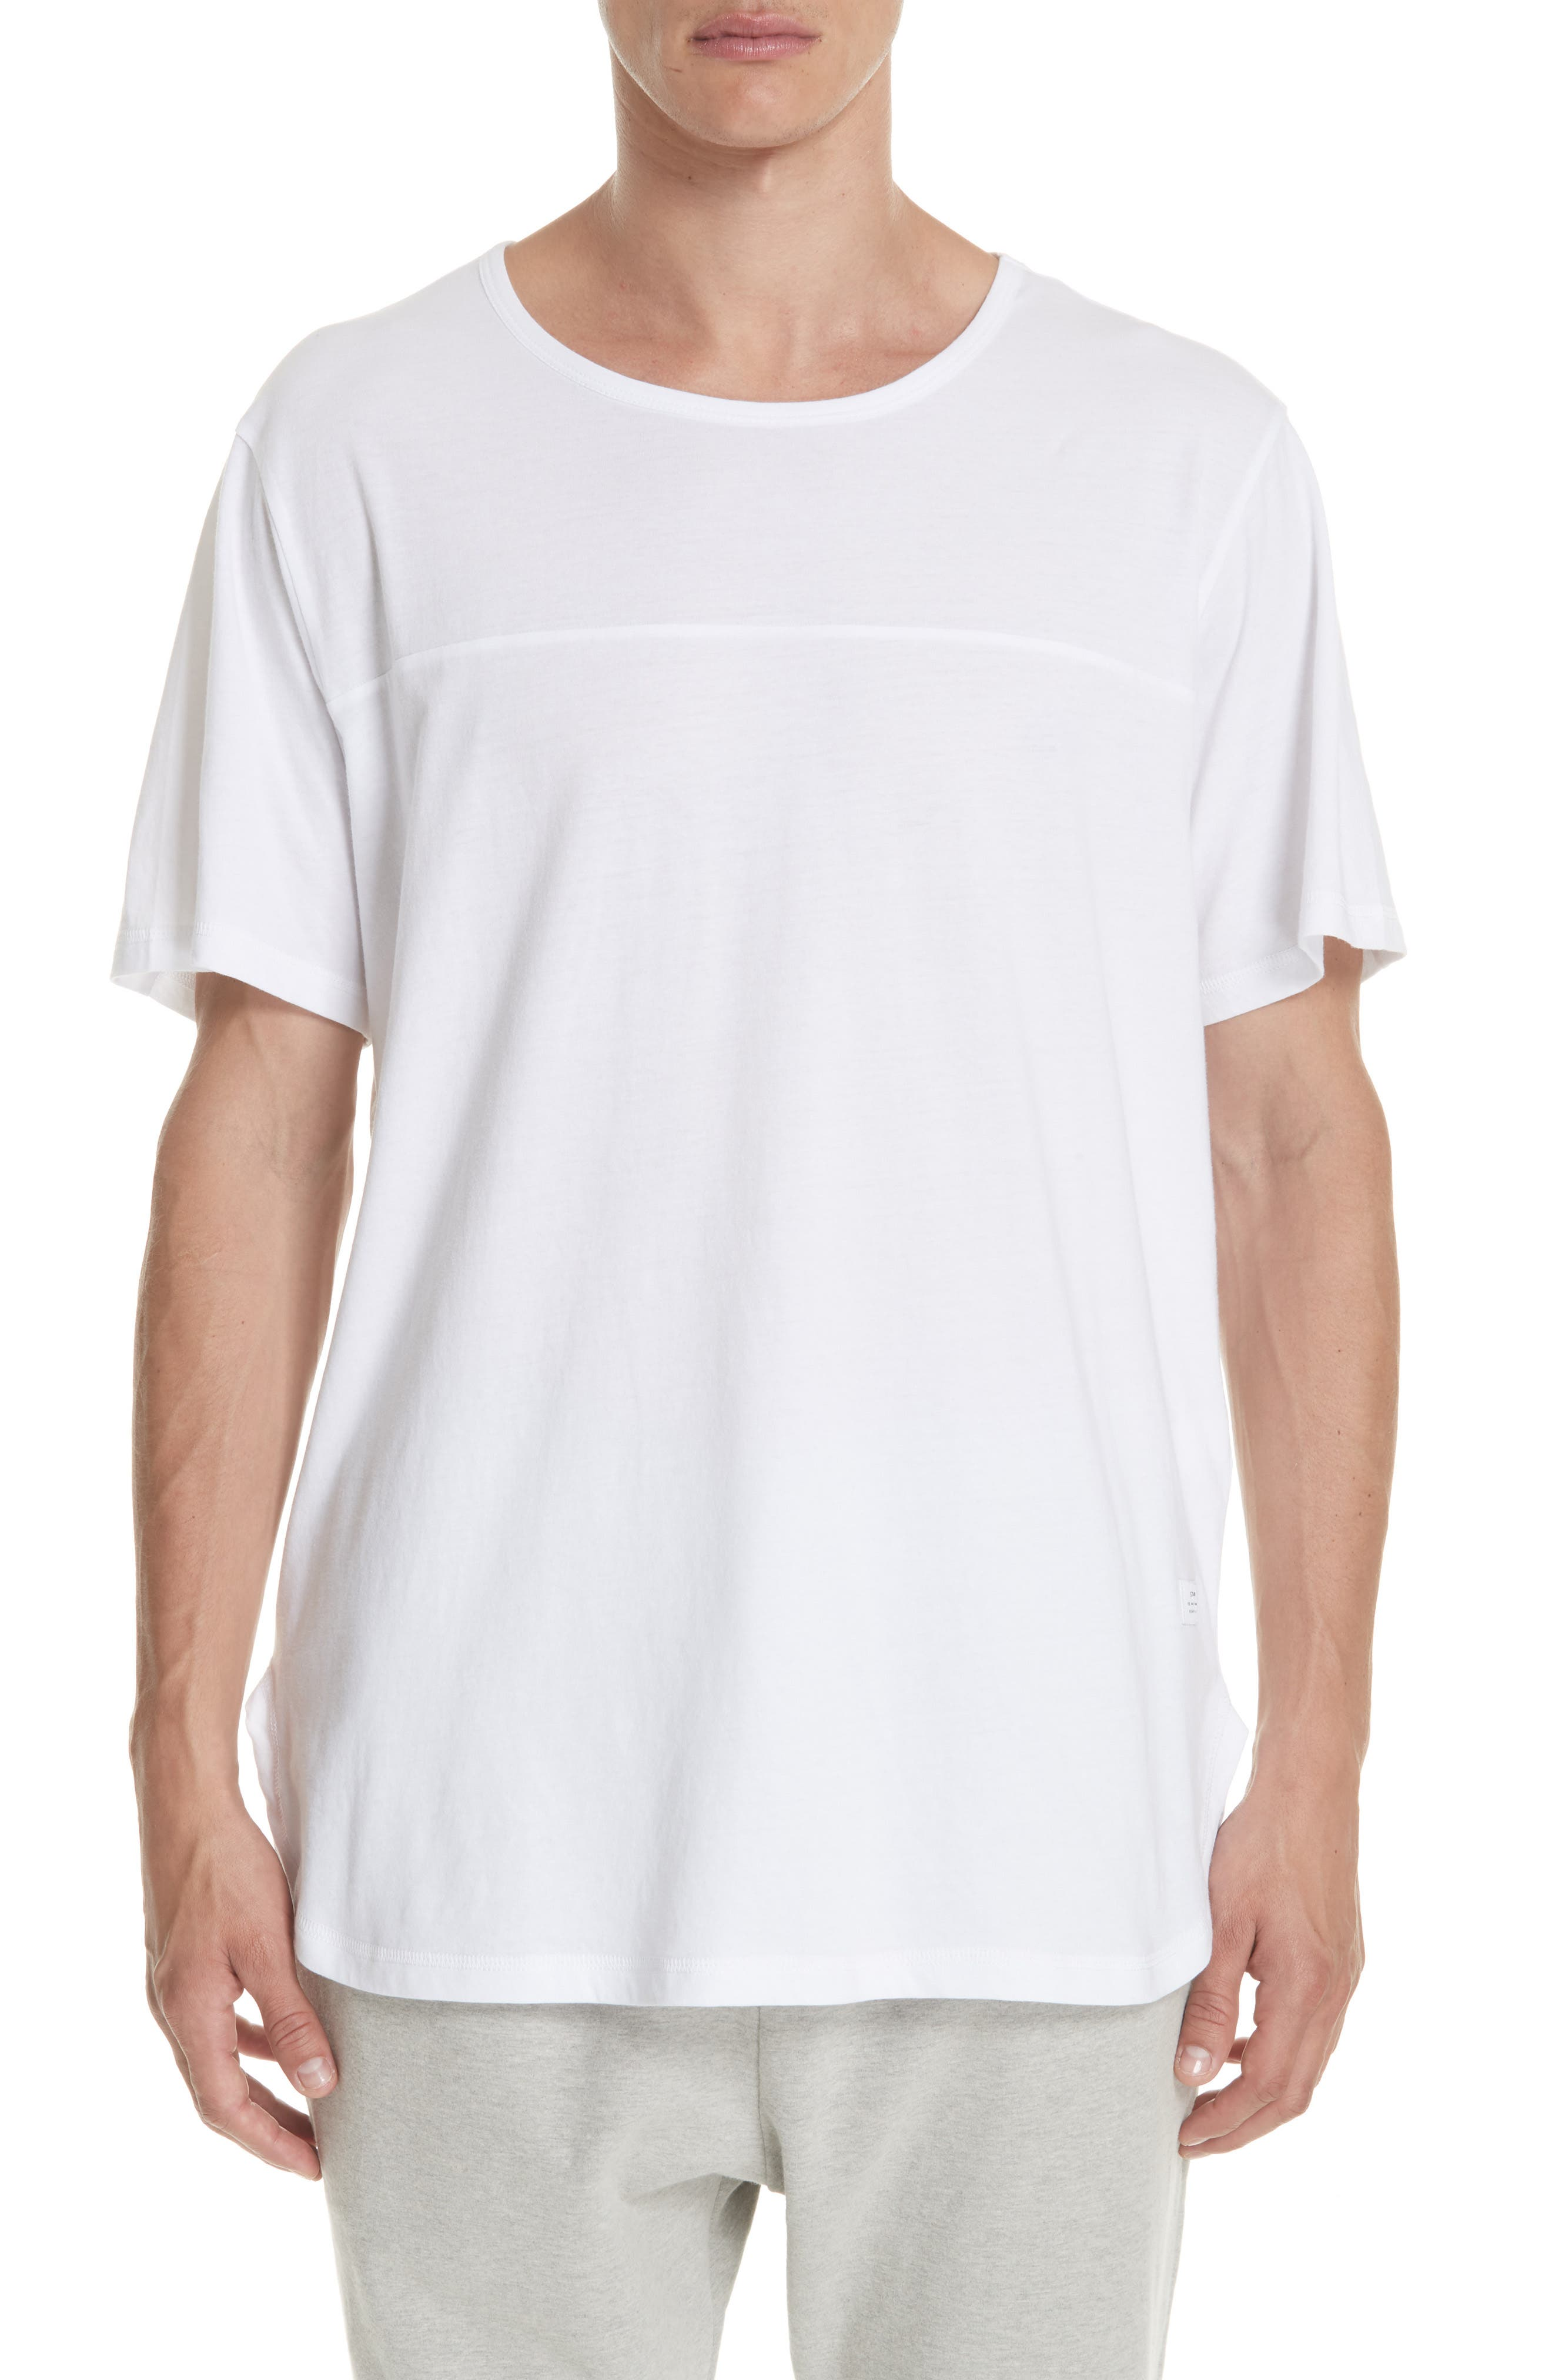 STAMPD Core Scallop T-Shirt in White